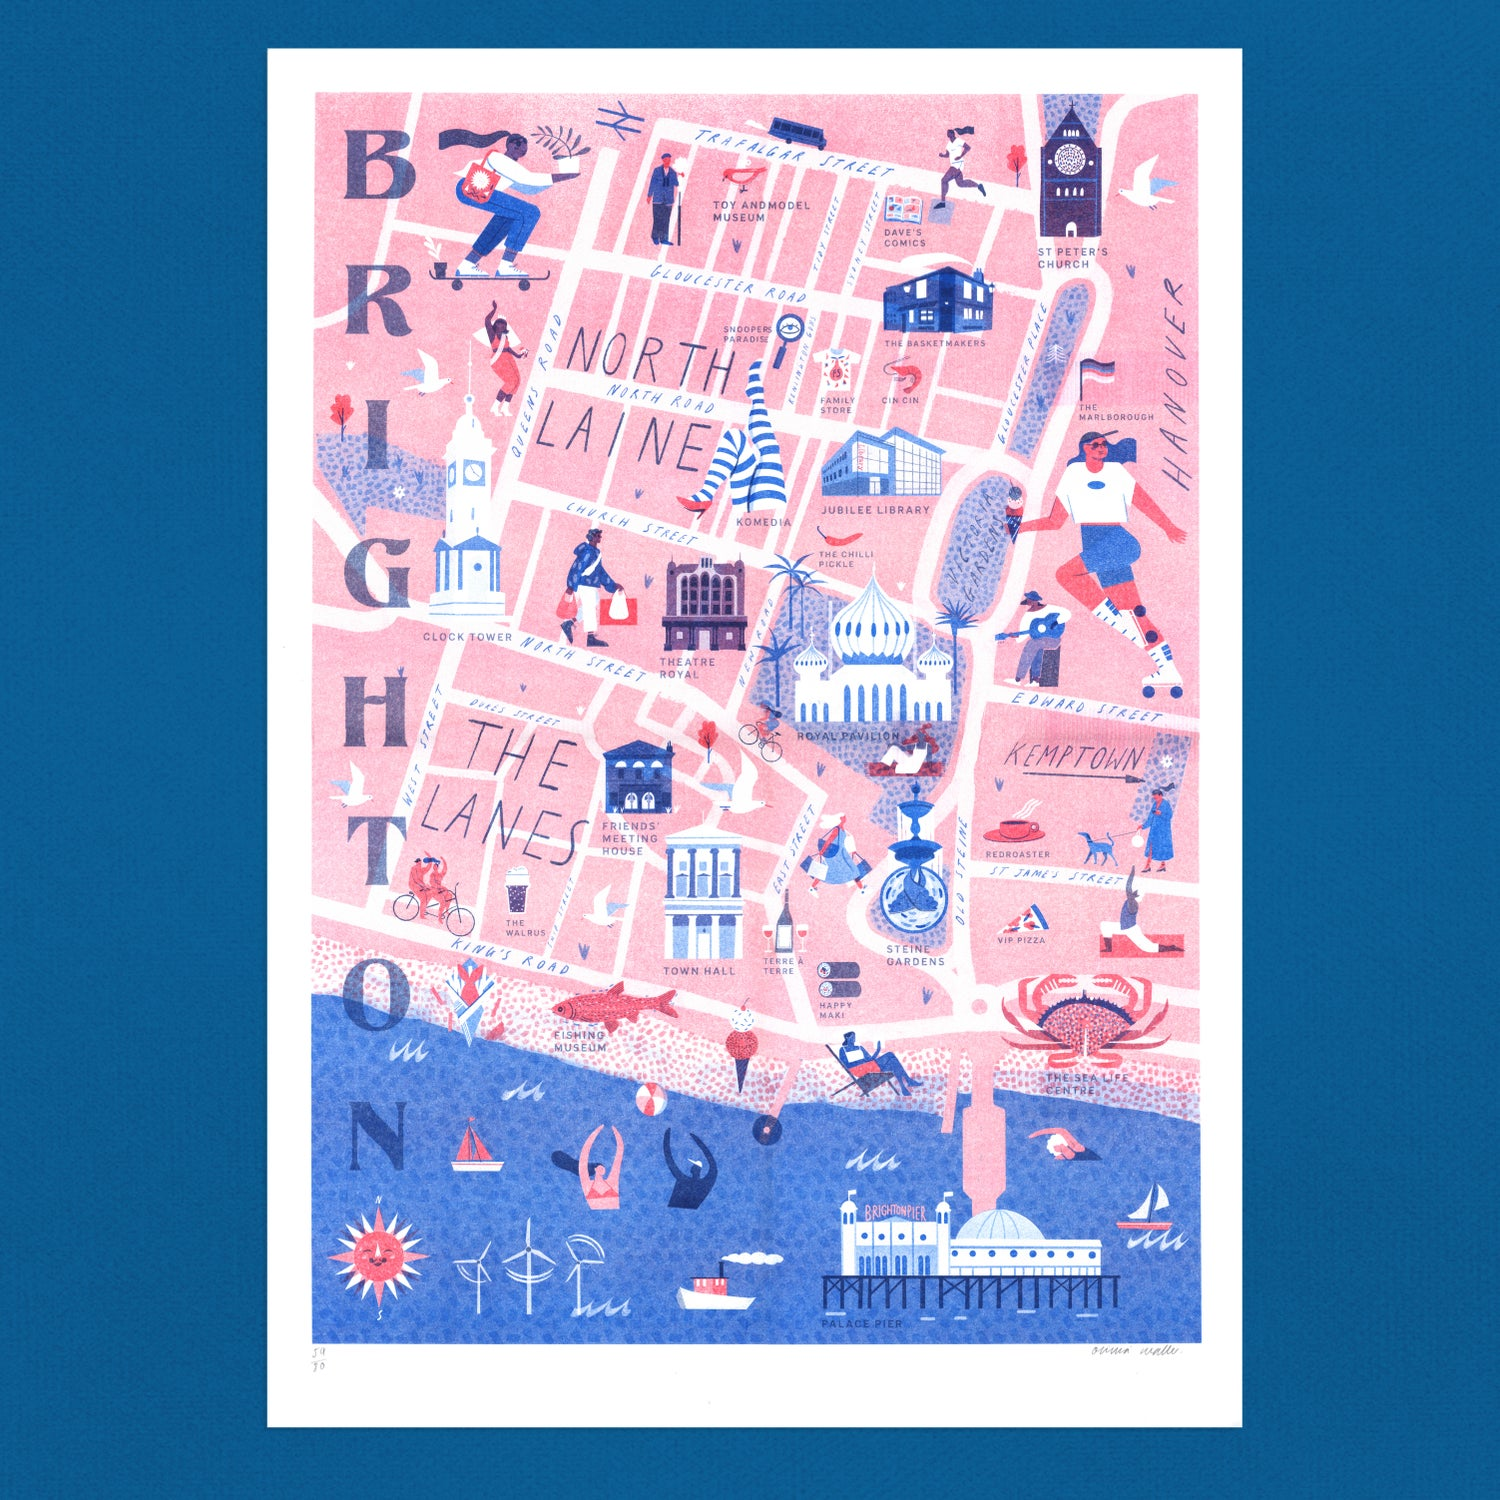 Image of Brighton Map riso print